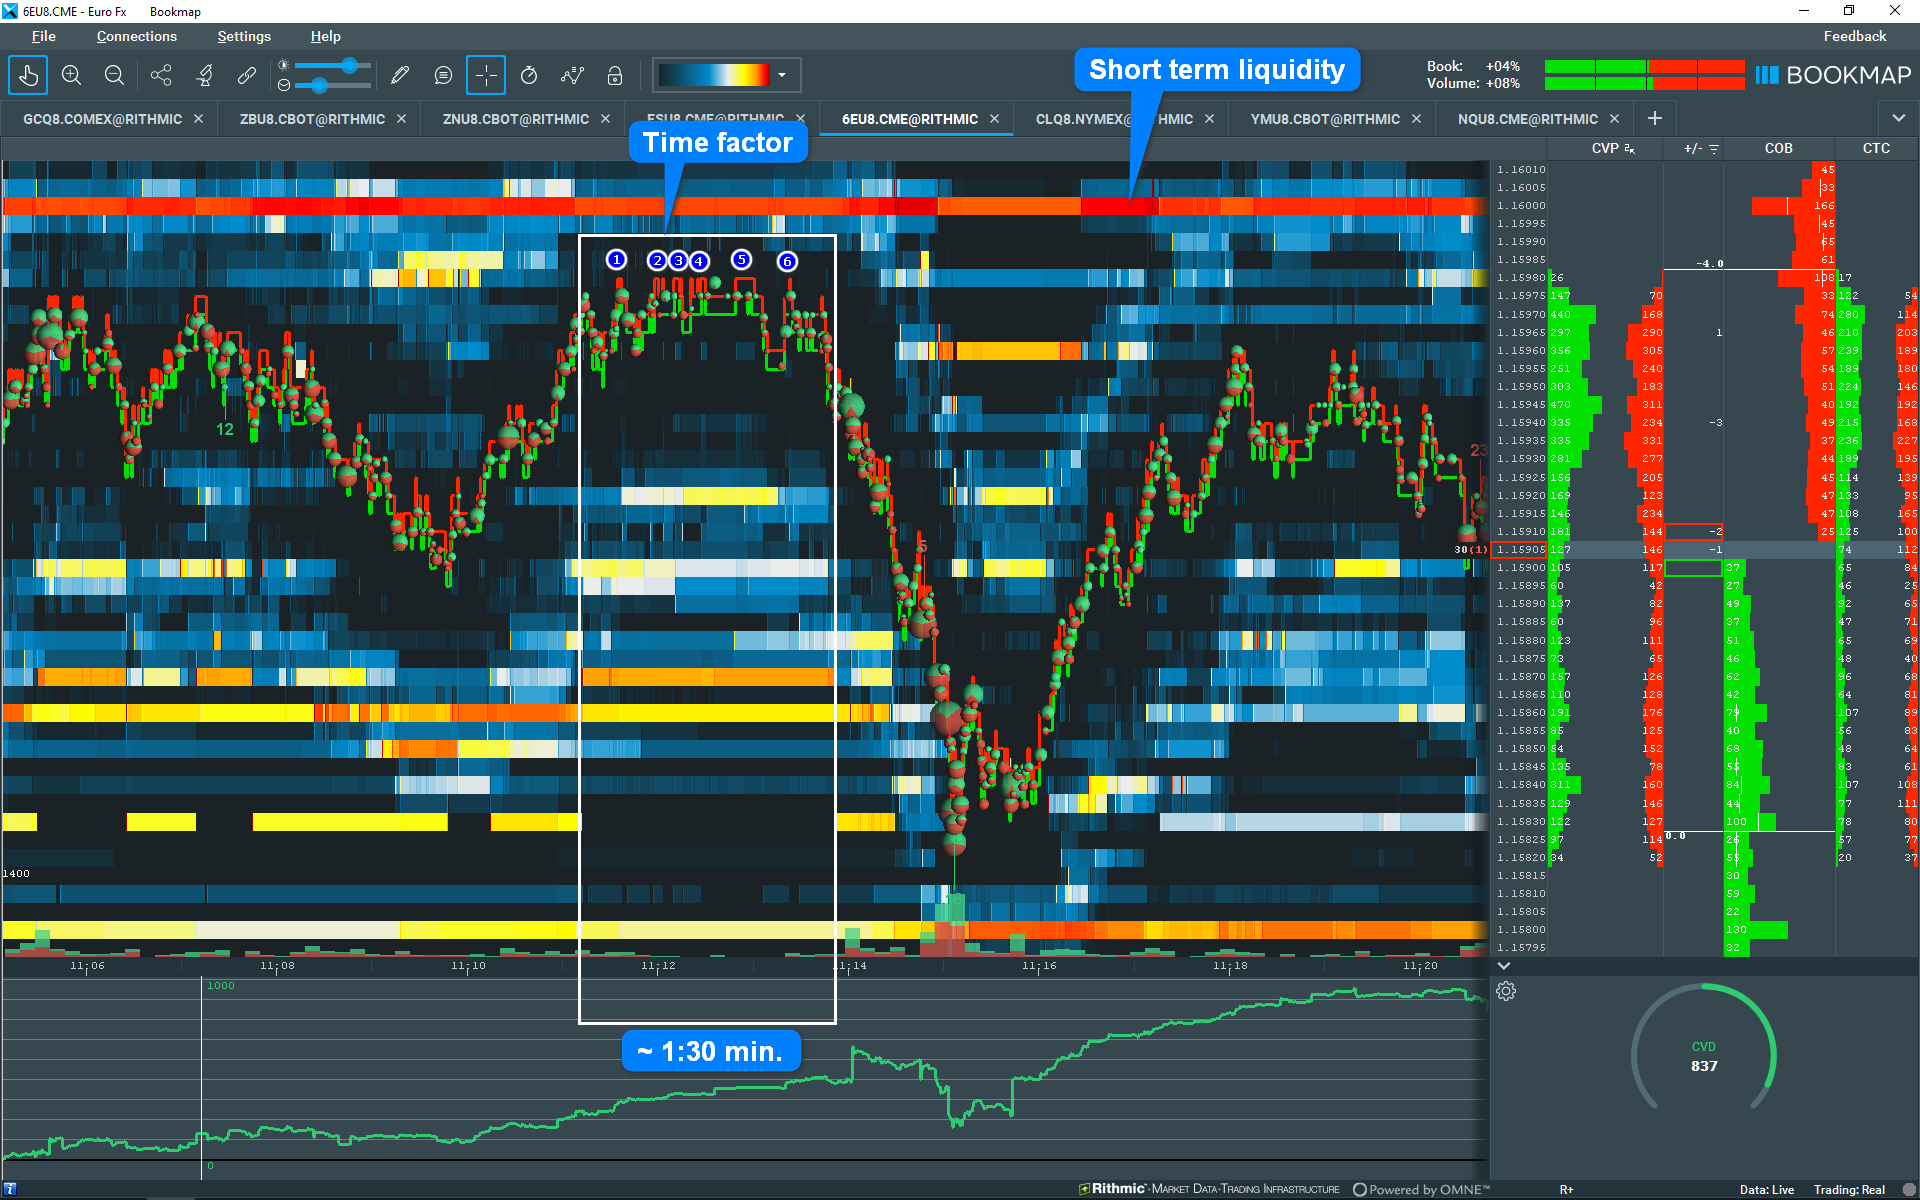 Spot Pull Backs with Exhaustion in Bookmap™ - Trading To Win